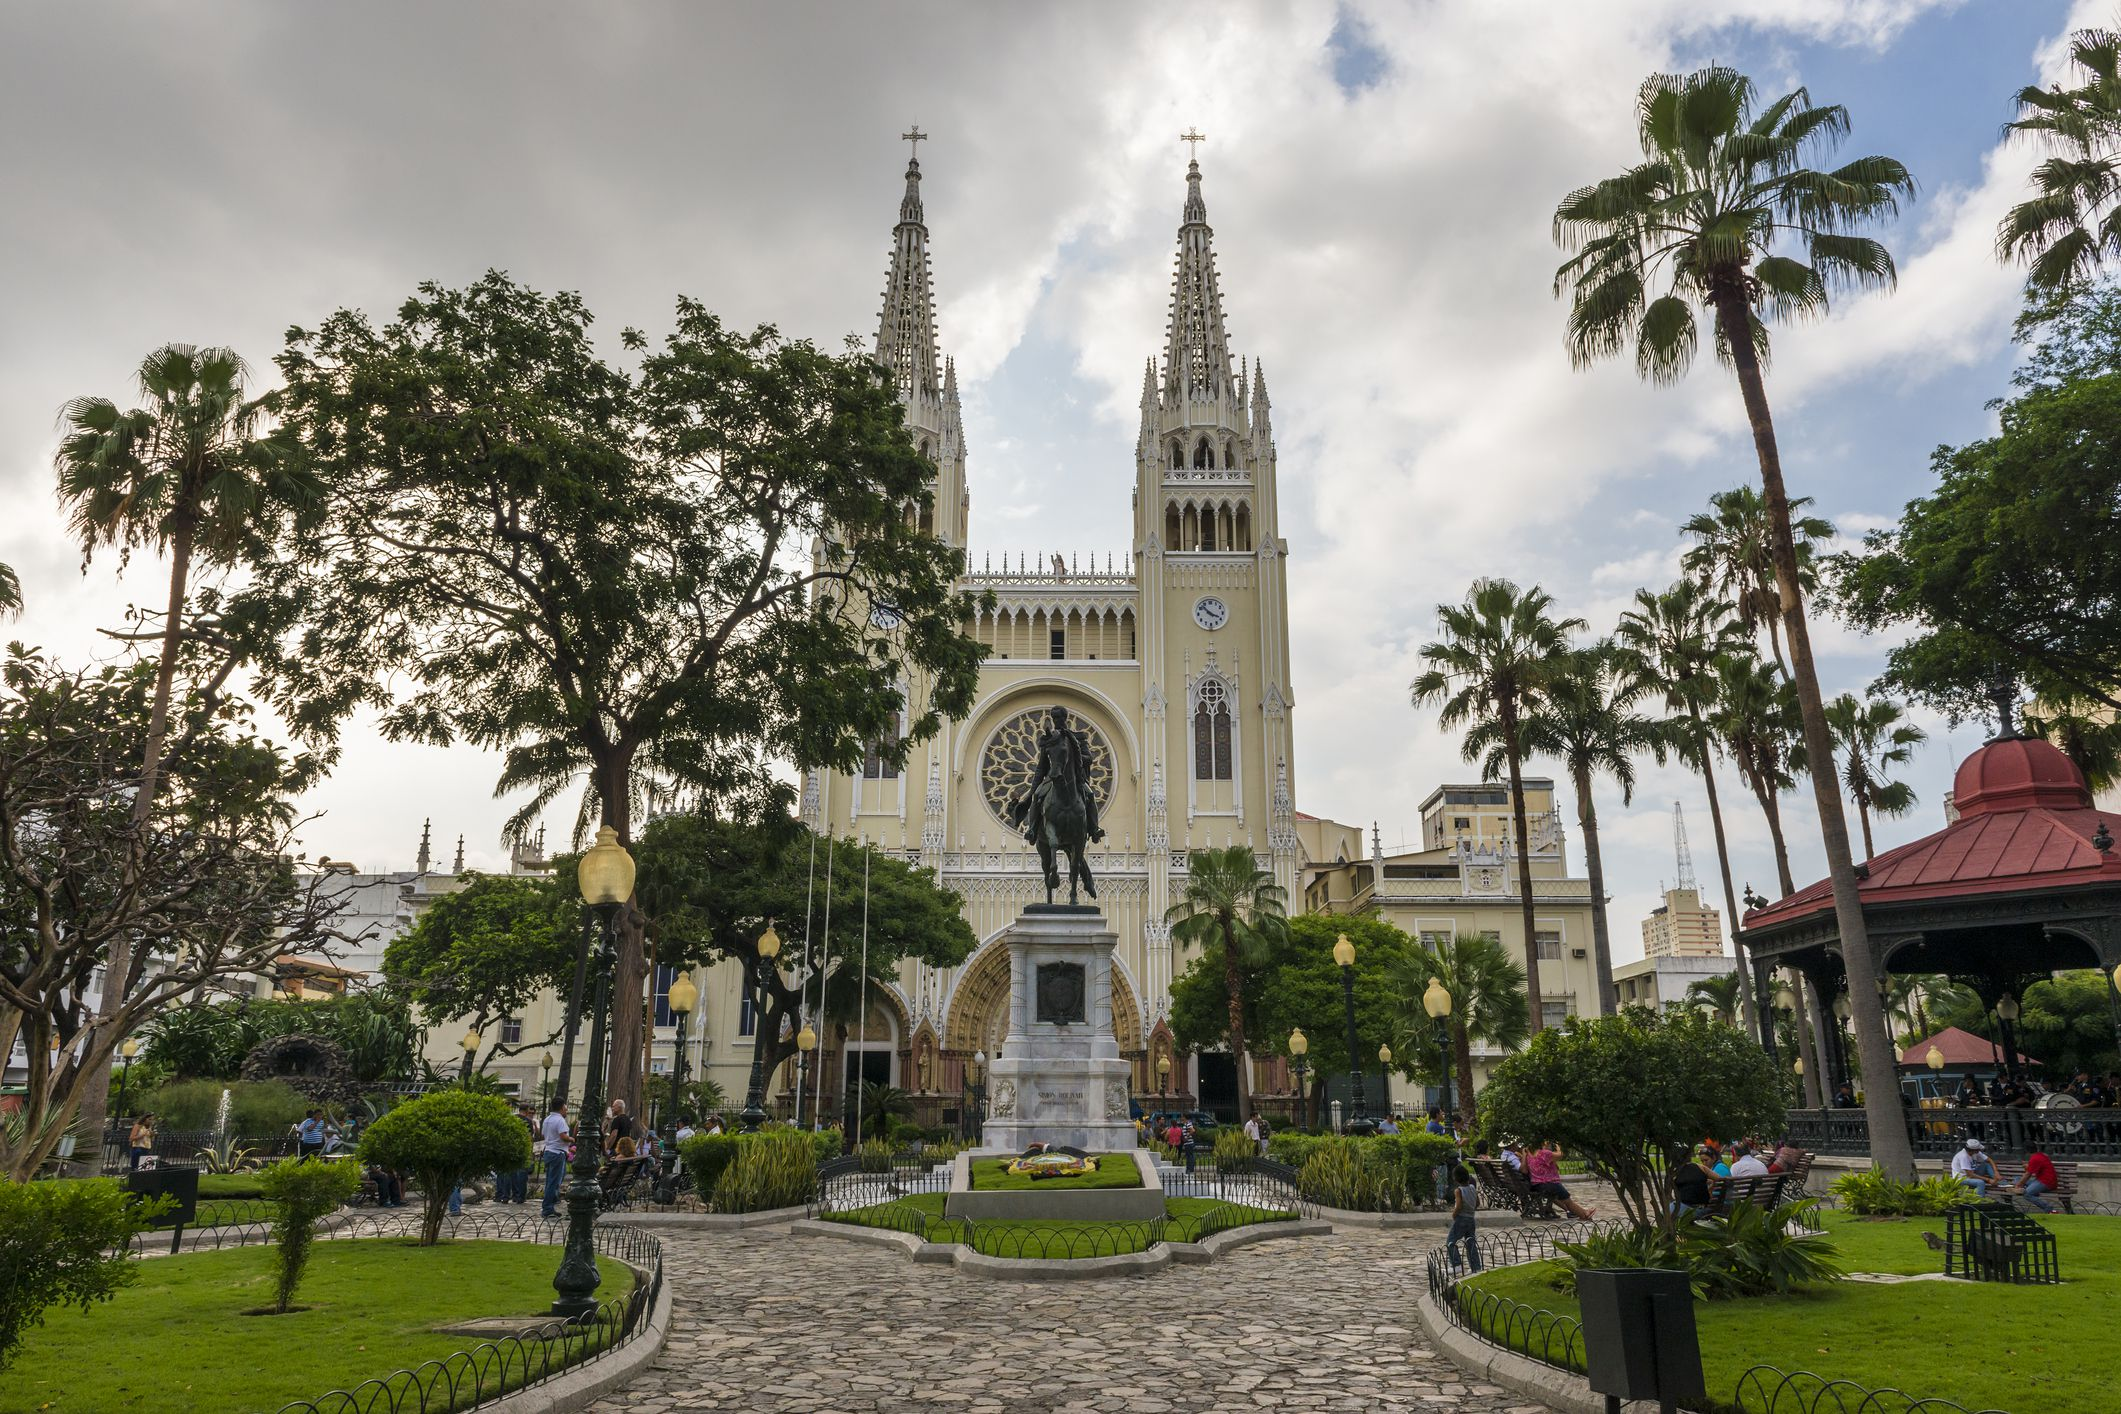 View of Parque Bolivar (Bolivar Square) in the city of Guayaquil in Ecuador